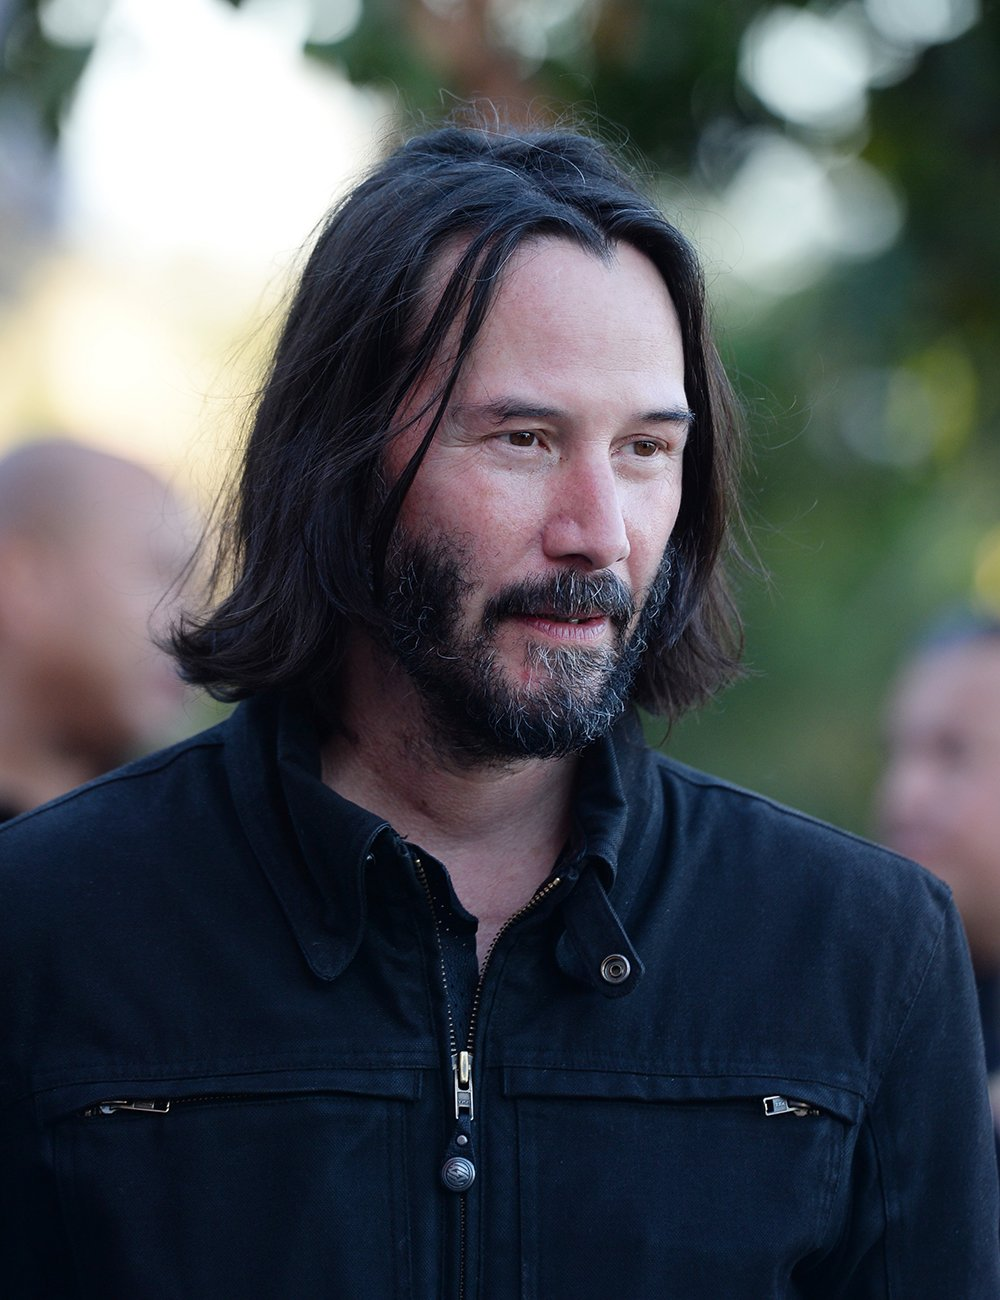 """Keanu Reeves arriving at the LA Special Screening of Amazon's """"Too Old To Die Young"""" at the Vista Theatre in Los Angeles, California, in June 2019.   Image: Getty Images."""